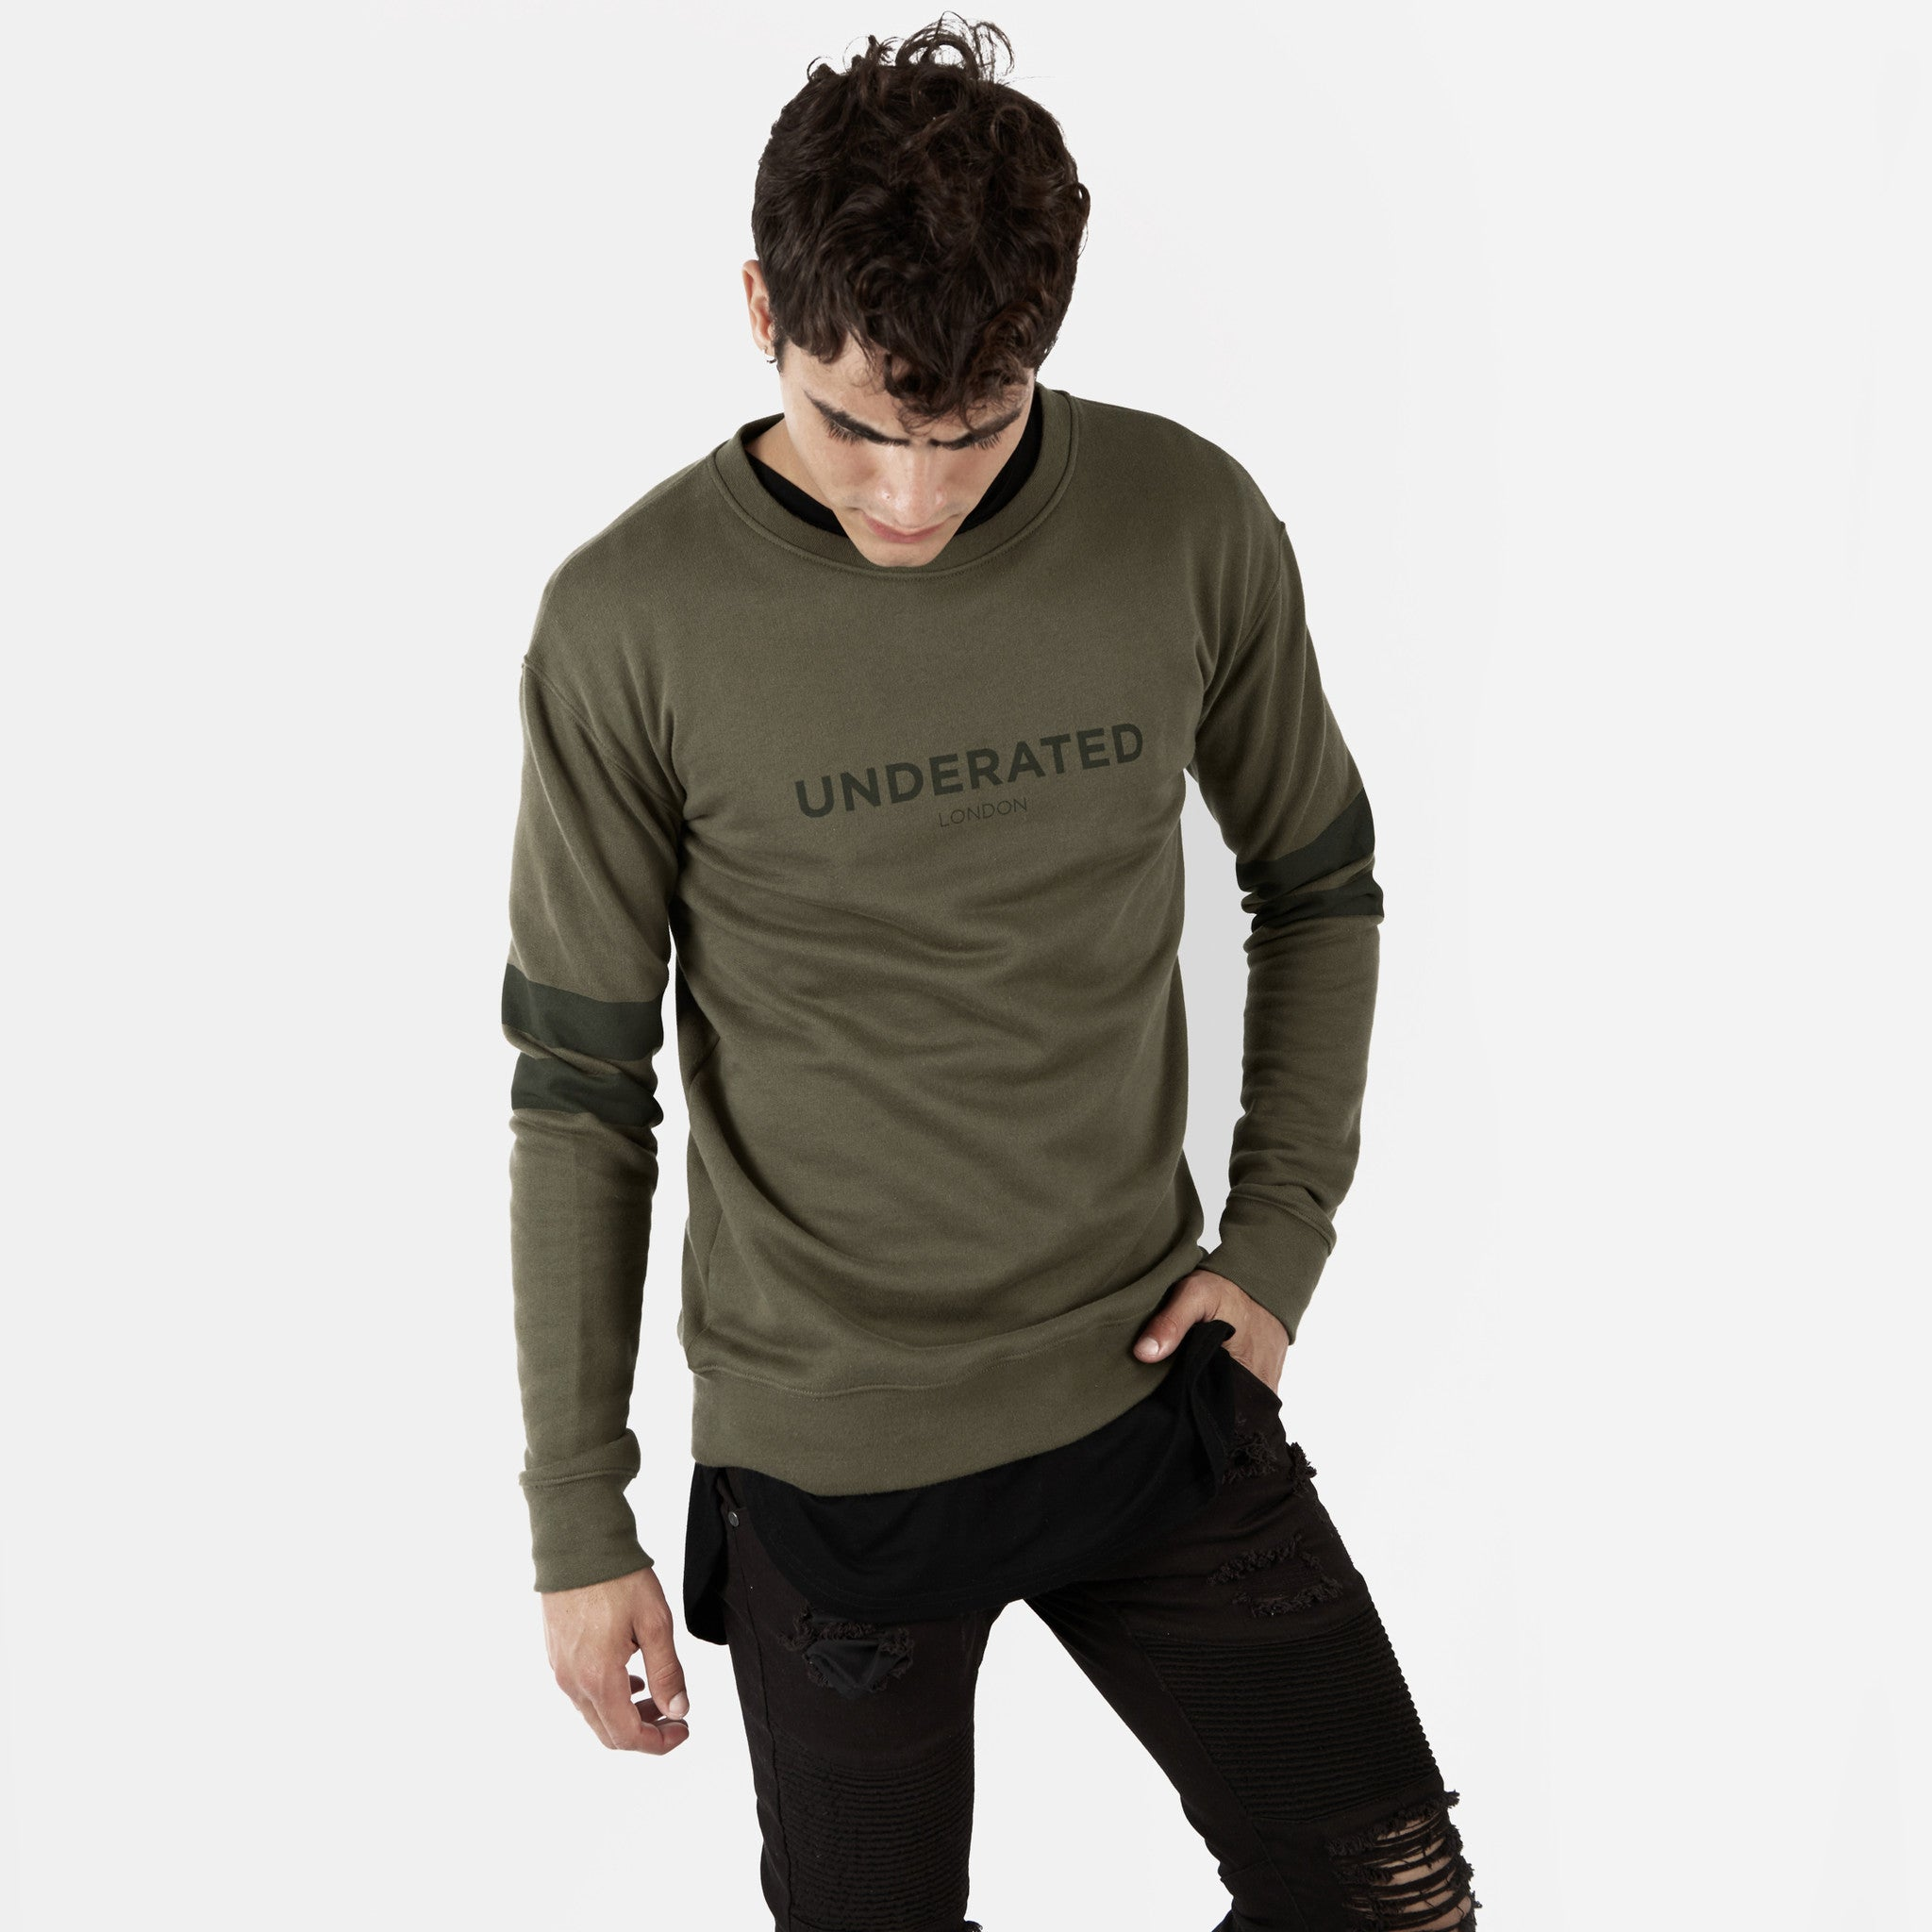 SW400 Tonal Print Sweatshirt - Khaki - underated london - underatedco - 4